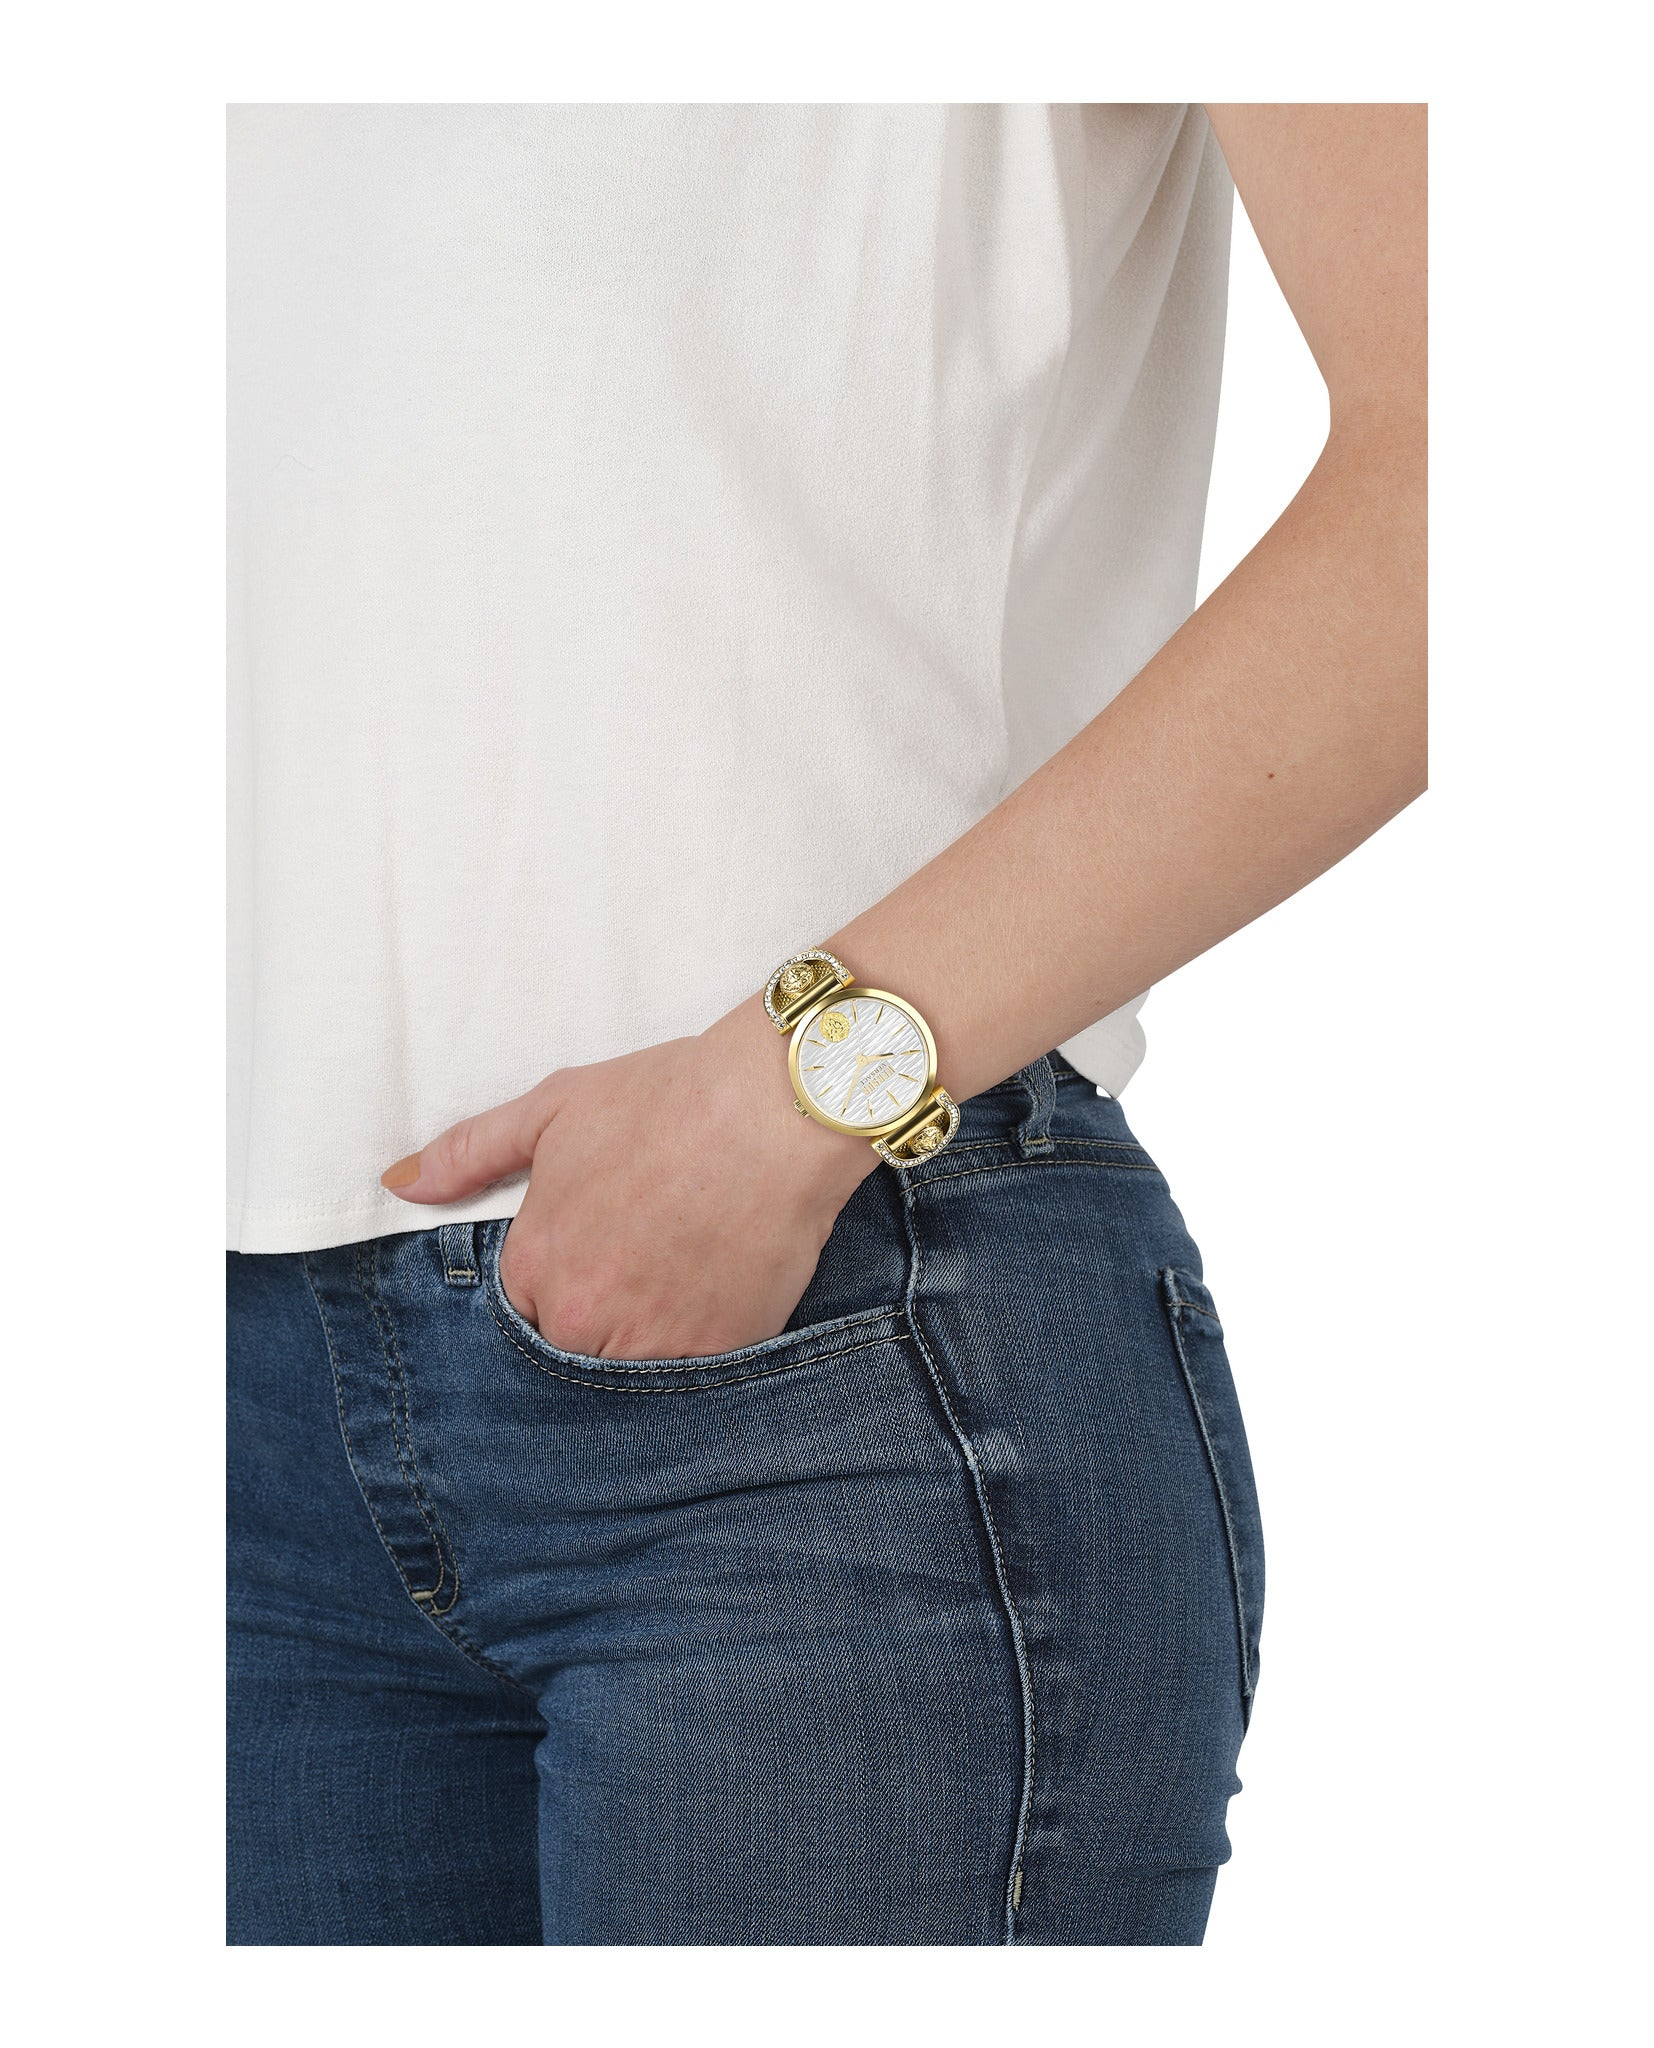 Iseo Bracelet Watch